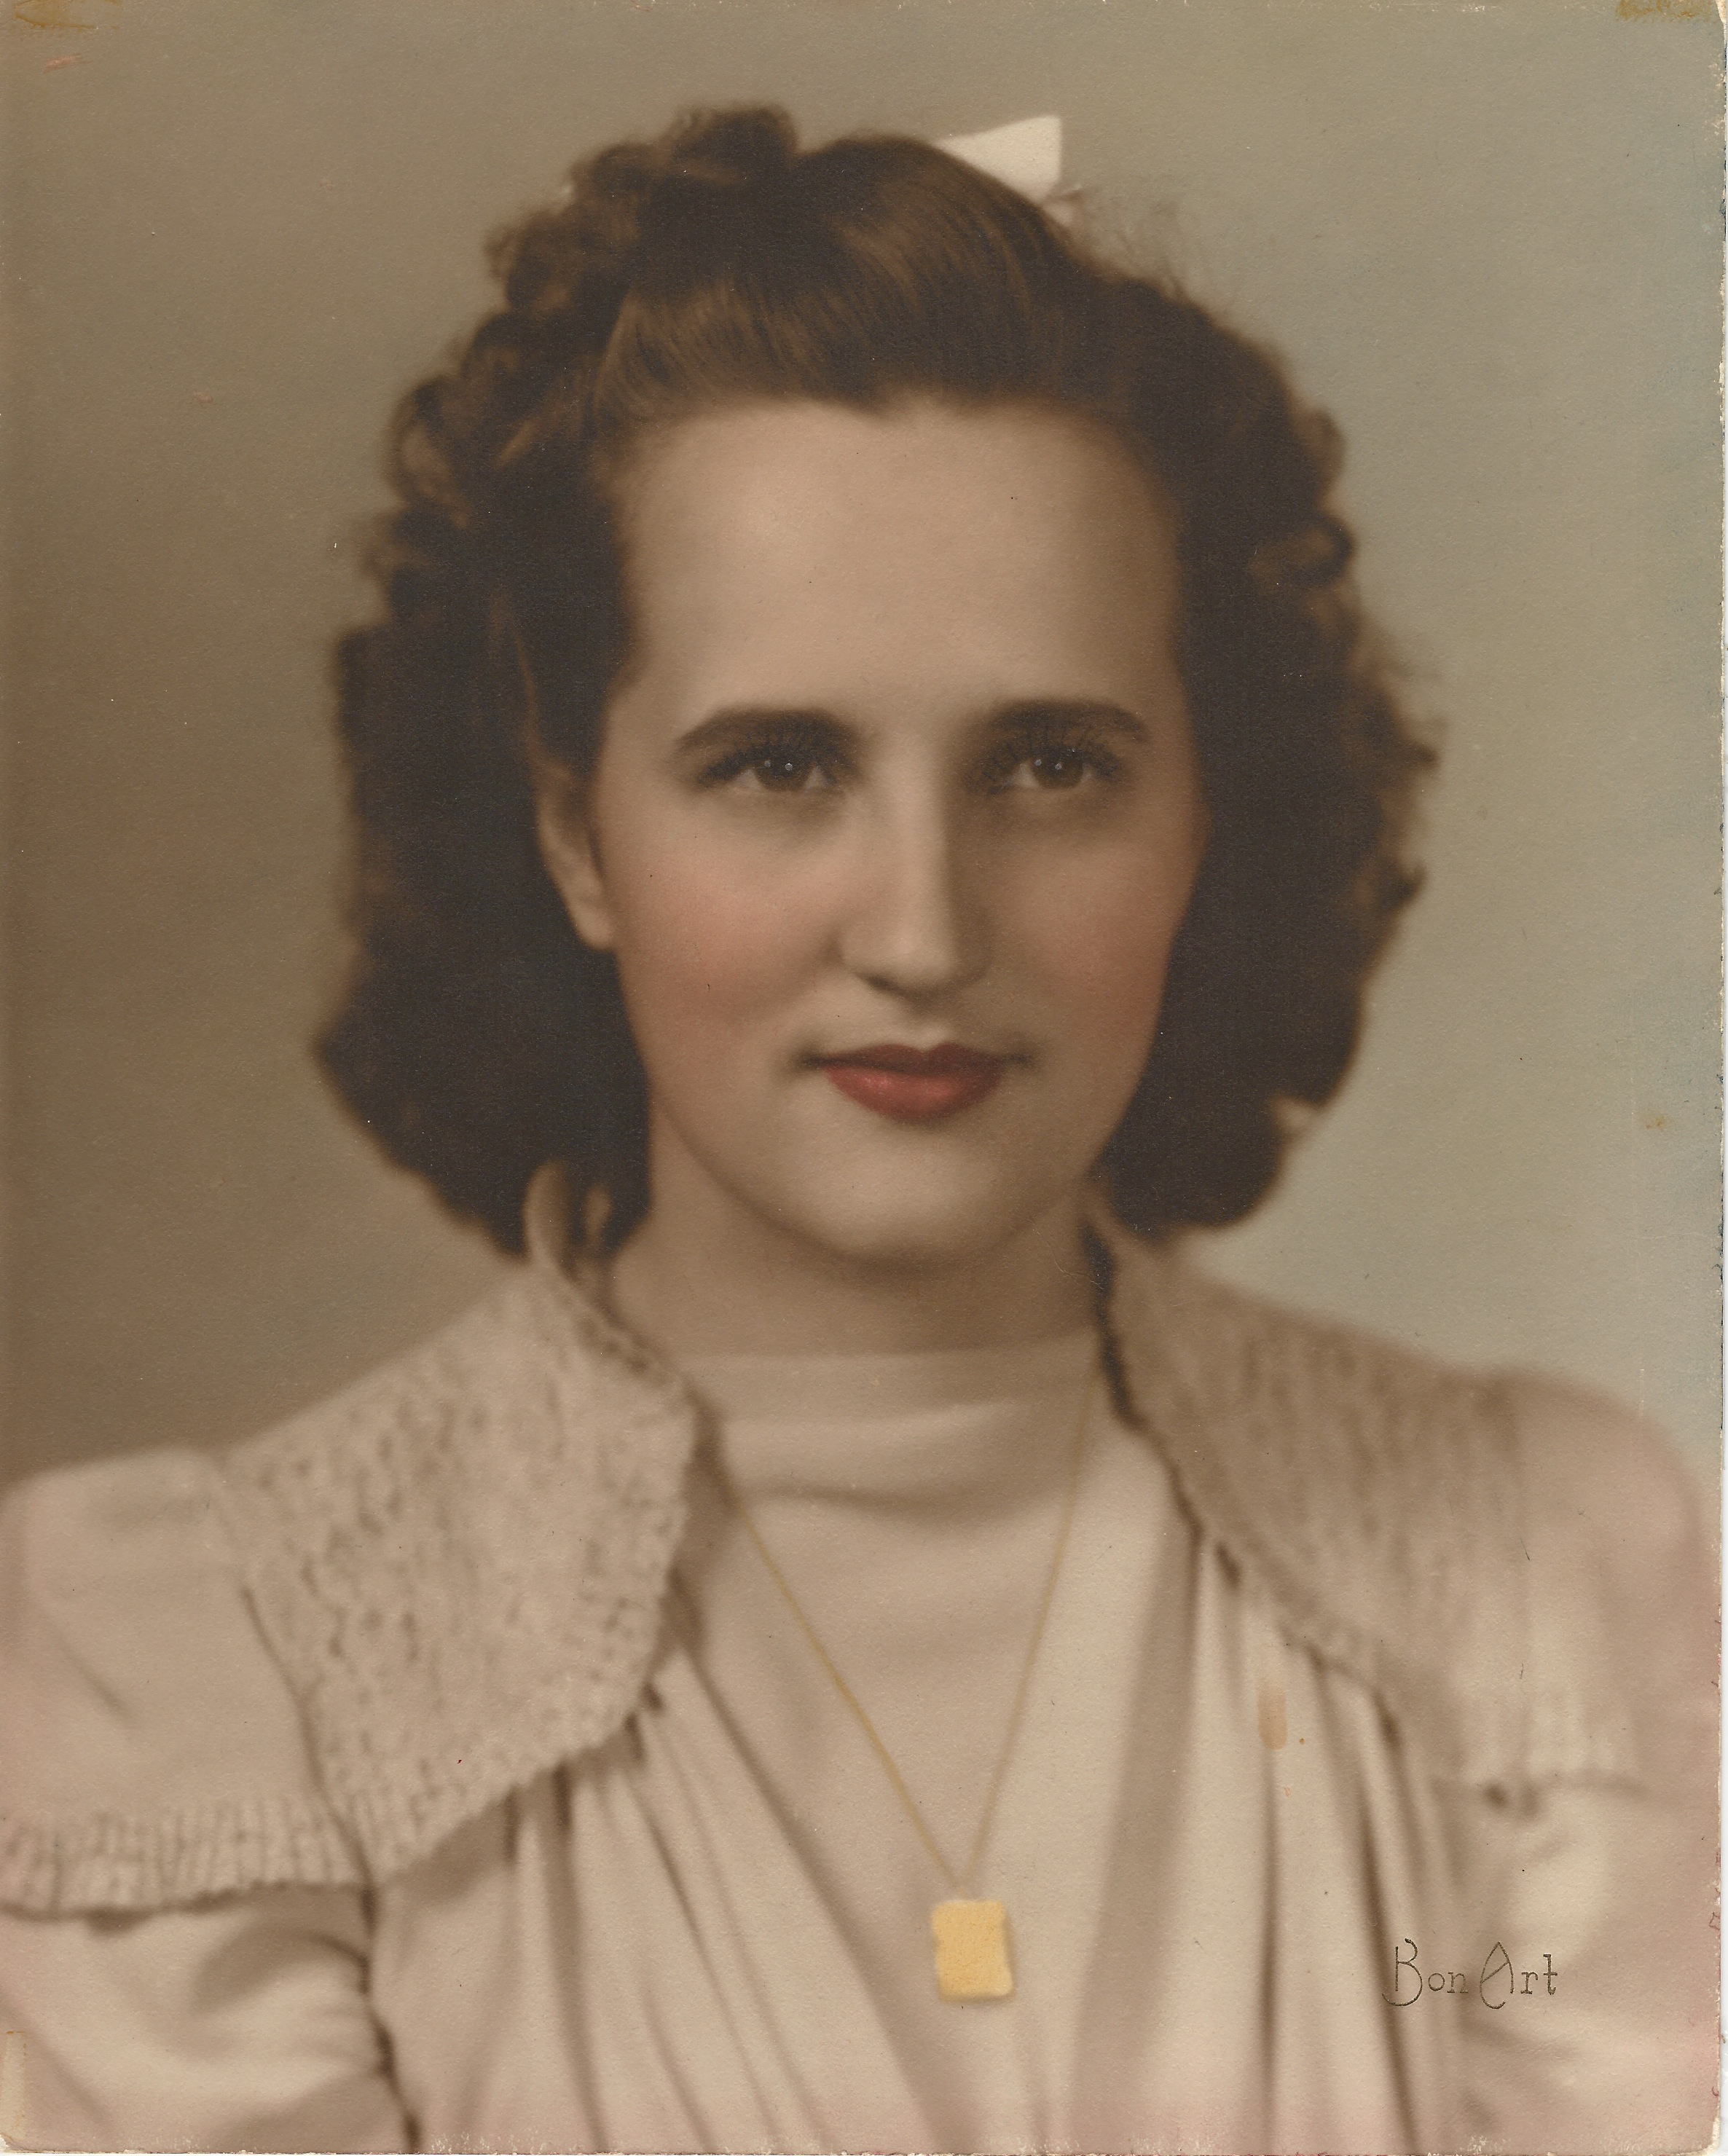 Obituary image of Jeanette Marjorie Palmer Wills